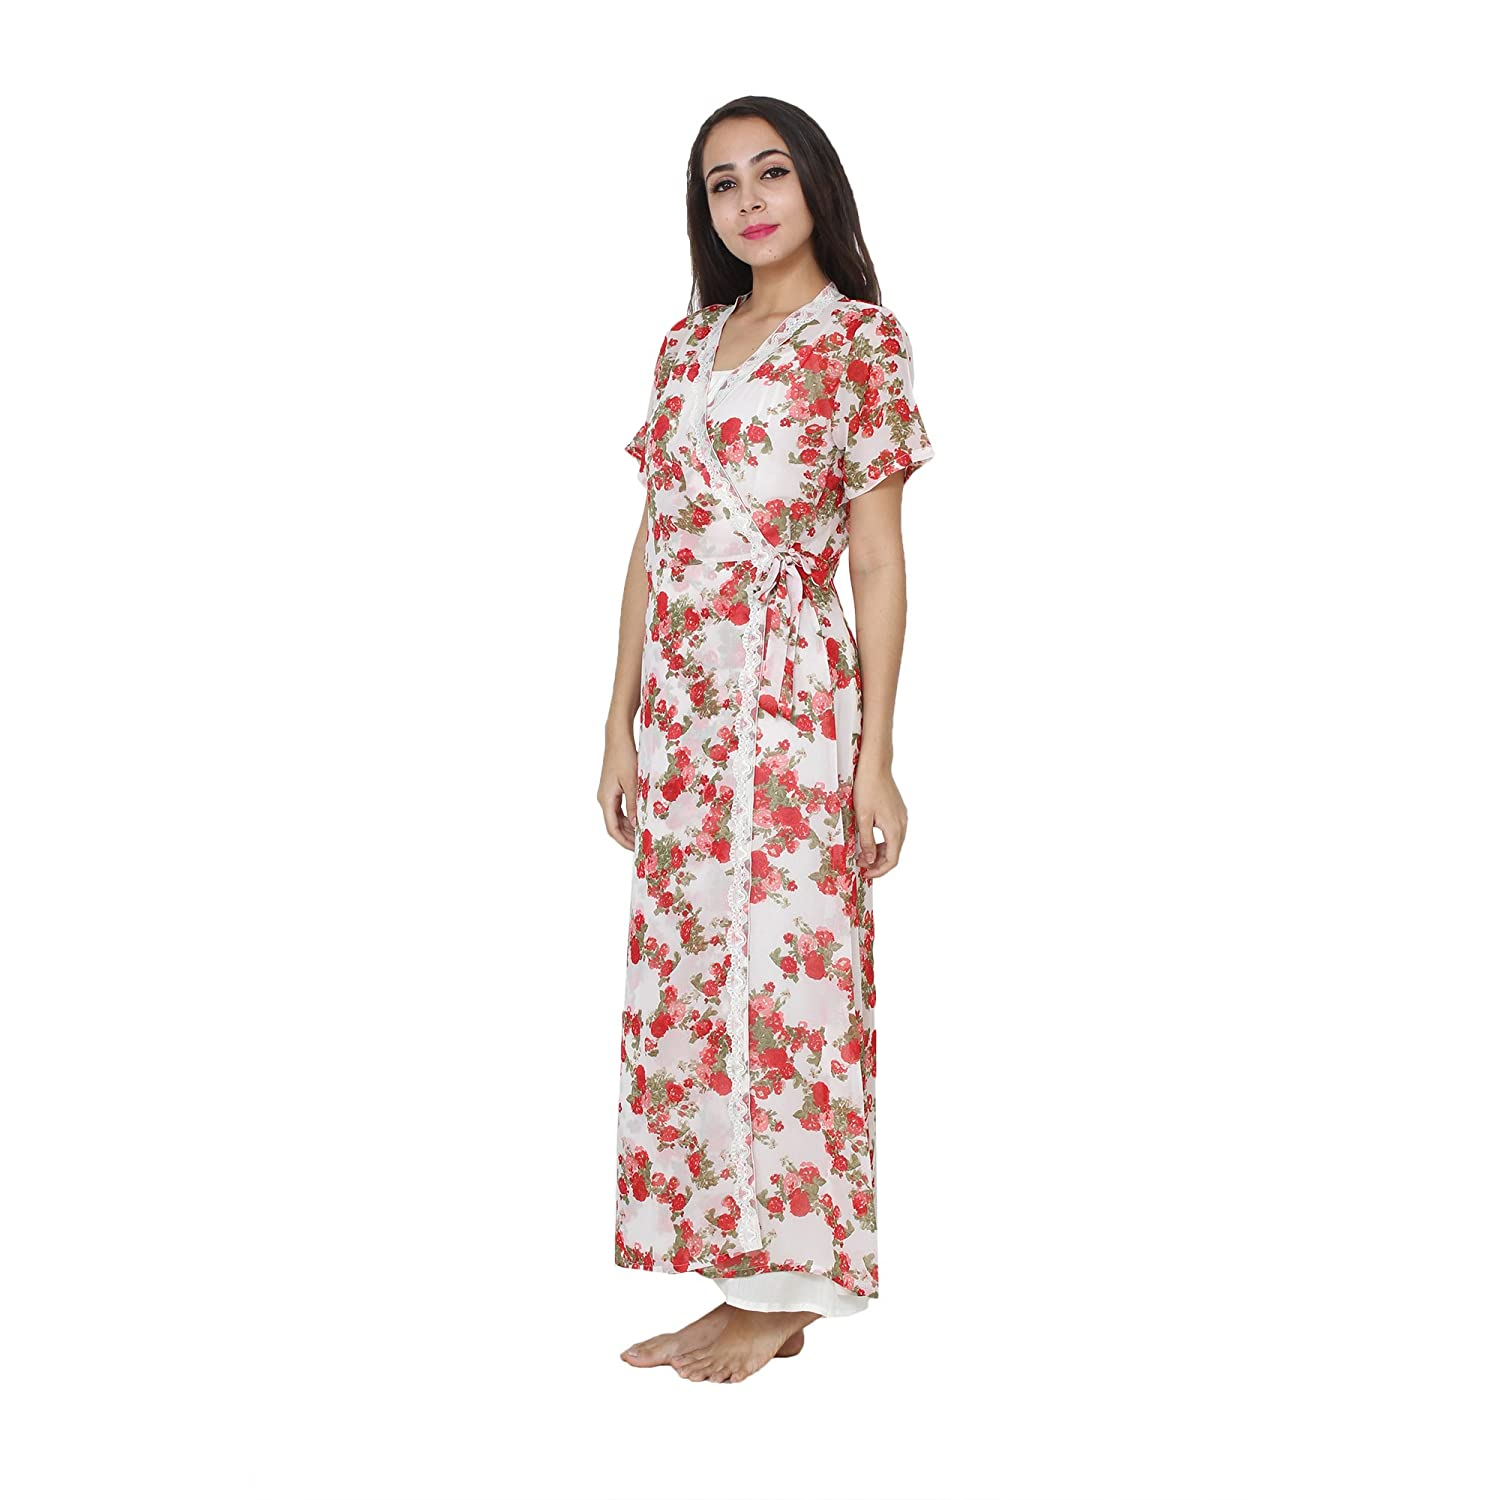 ea7765295d Patrorna Women s A Line Nighty Night Dress with Lace Trim Robe in Off-White  (Size S-7XL